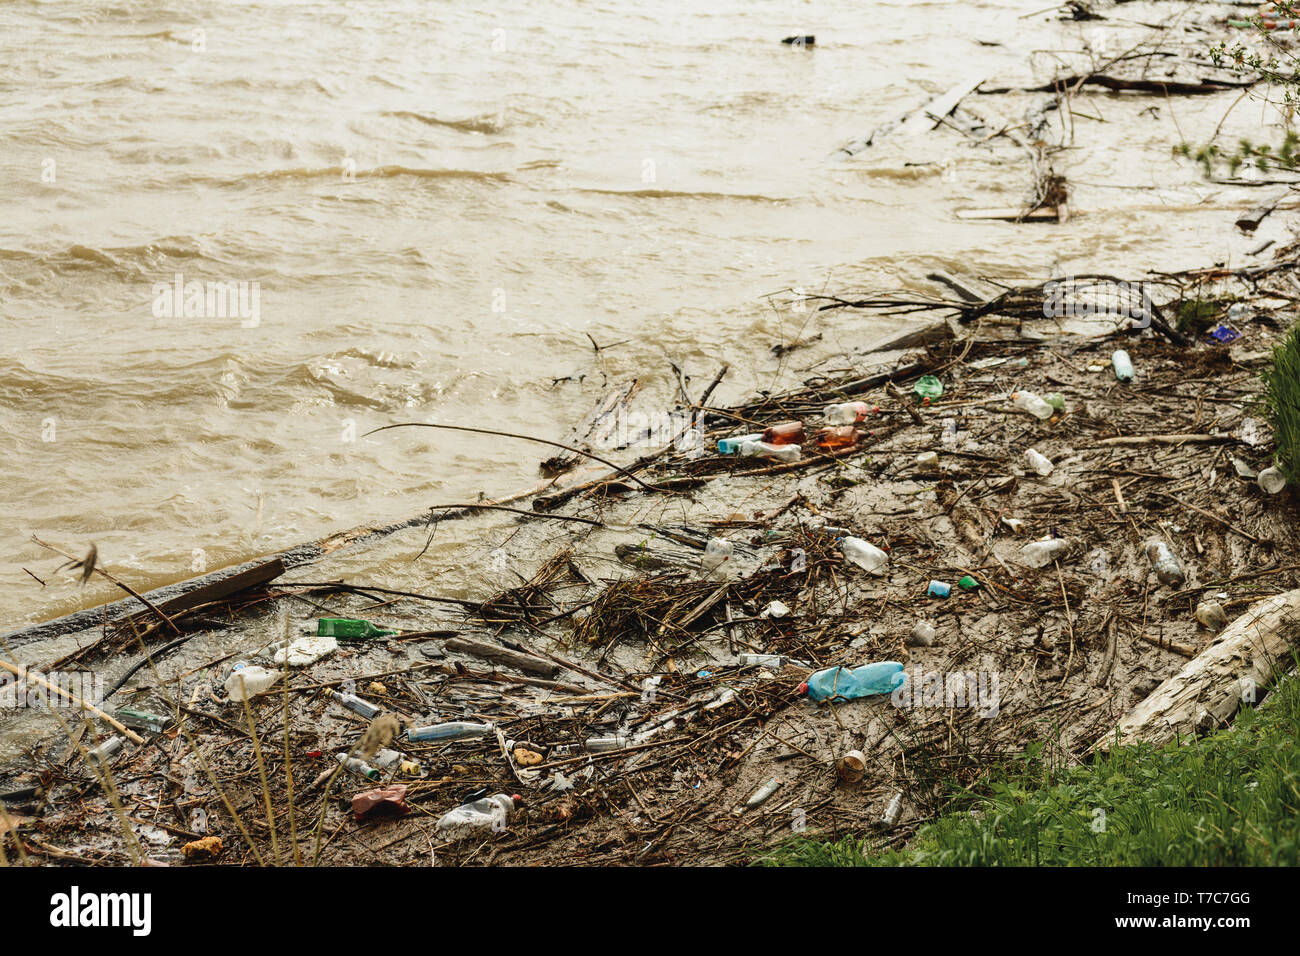 Plastic waste in the river, pollution and the environment in the water, an environmental problem. 2019 - Stock Image